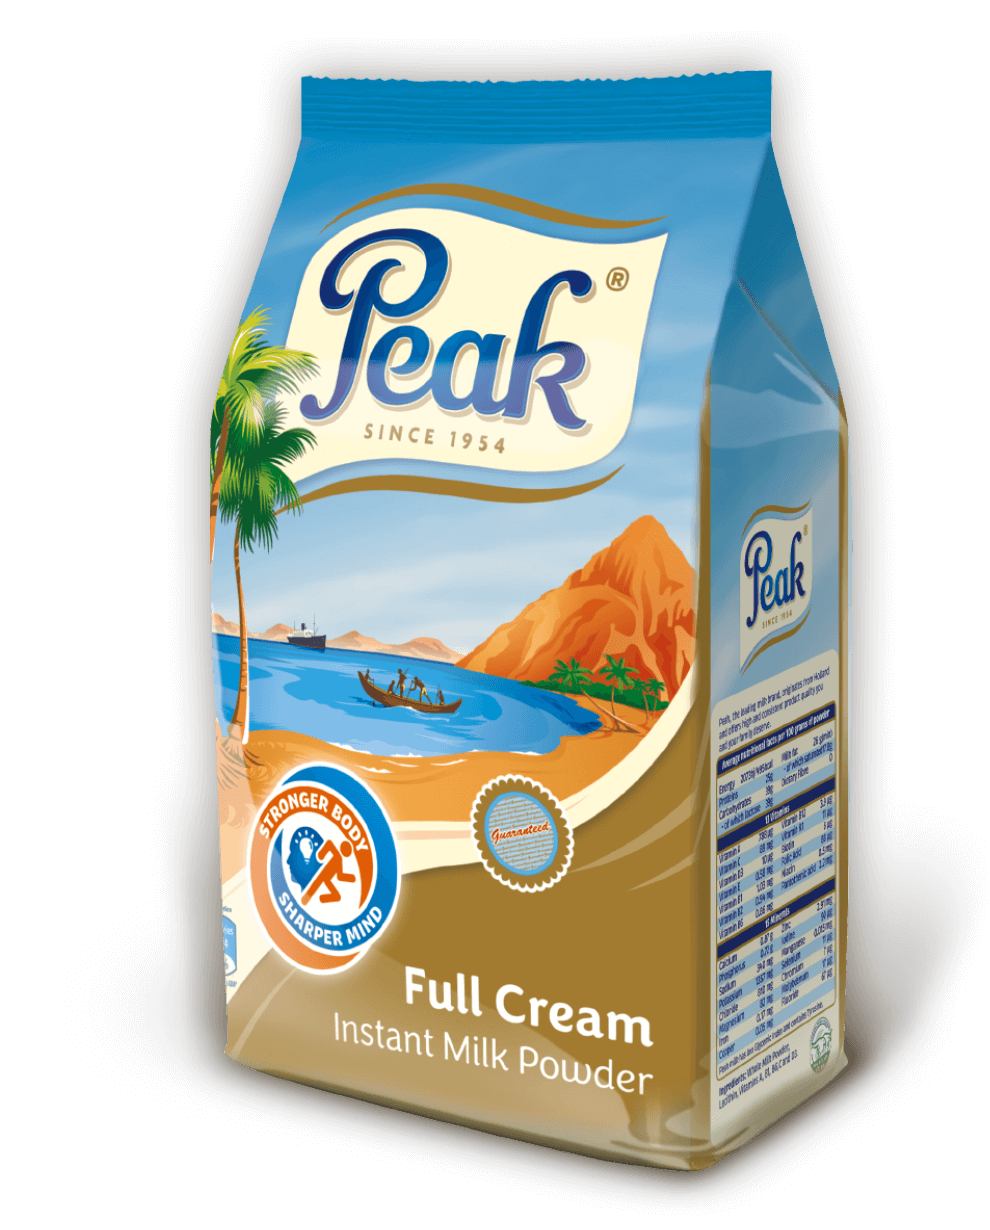 Peak Full Cream Instant Milk Powder Pouch